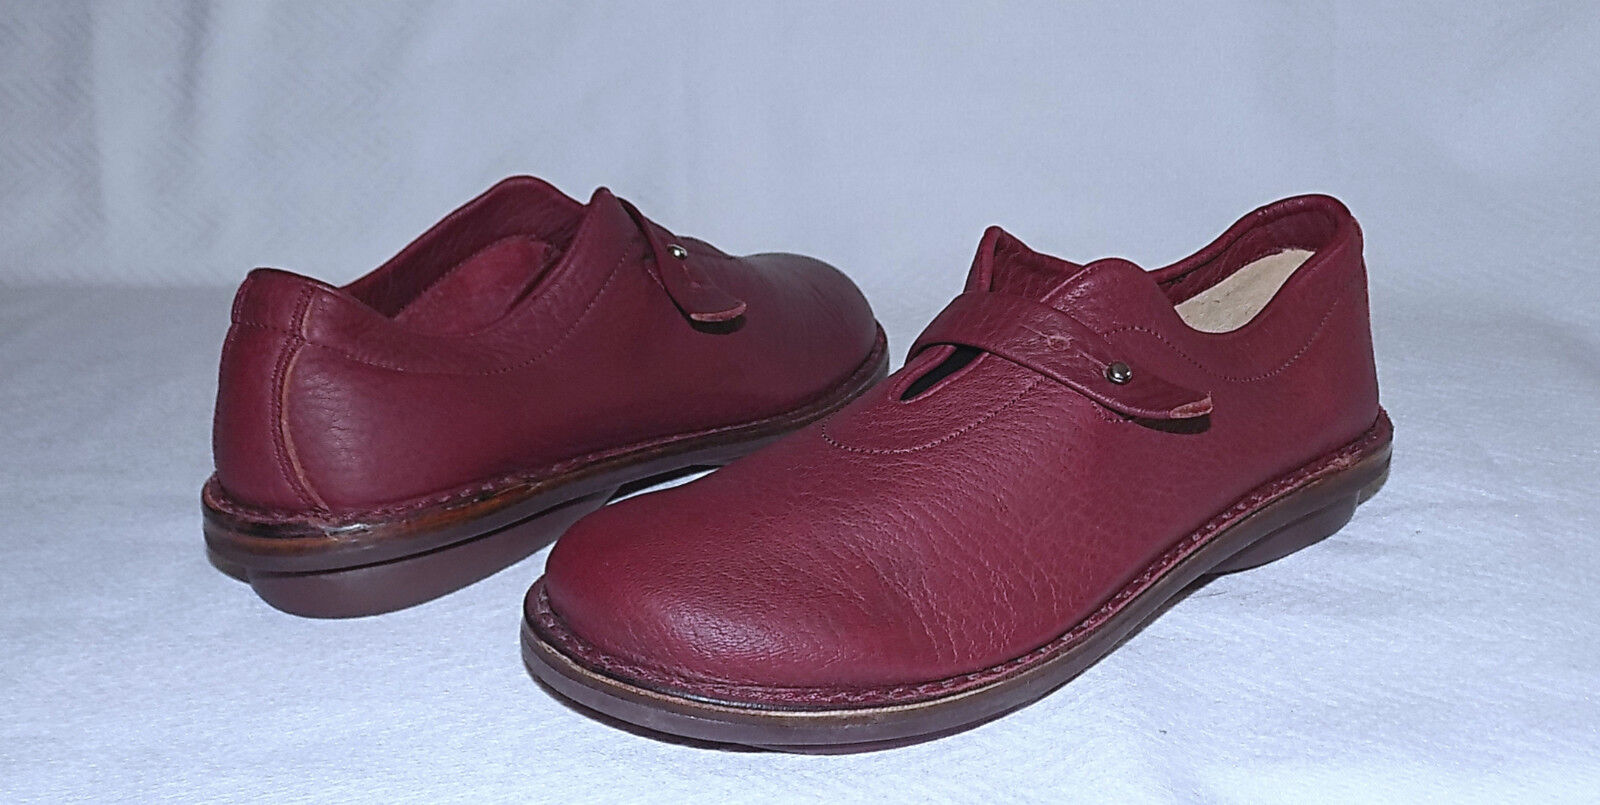 TRIPPEN Germany -Pelle Mary Jane FLATS-Size 38/8M-Red color-worn 1 Time-Nice.